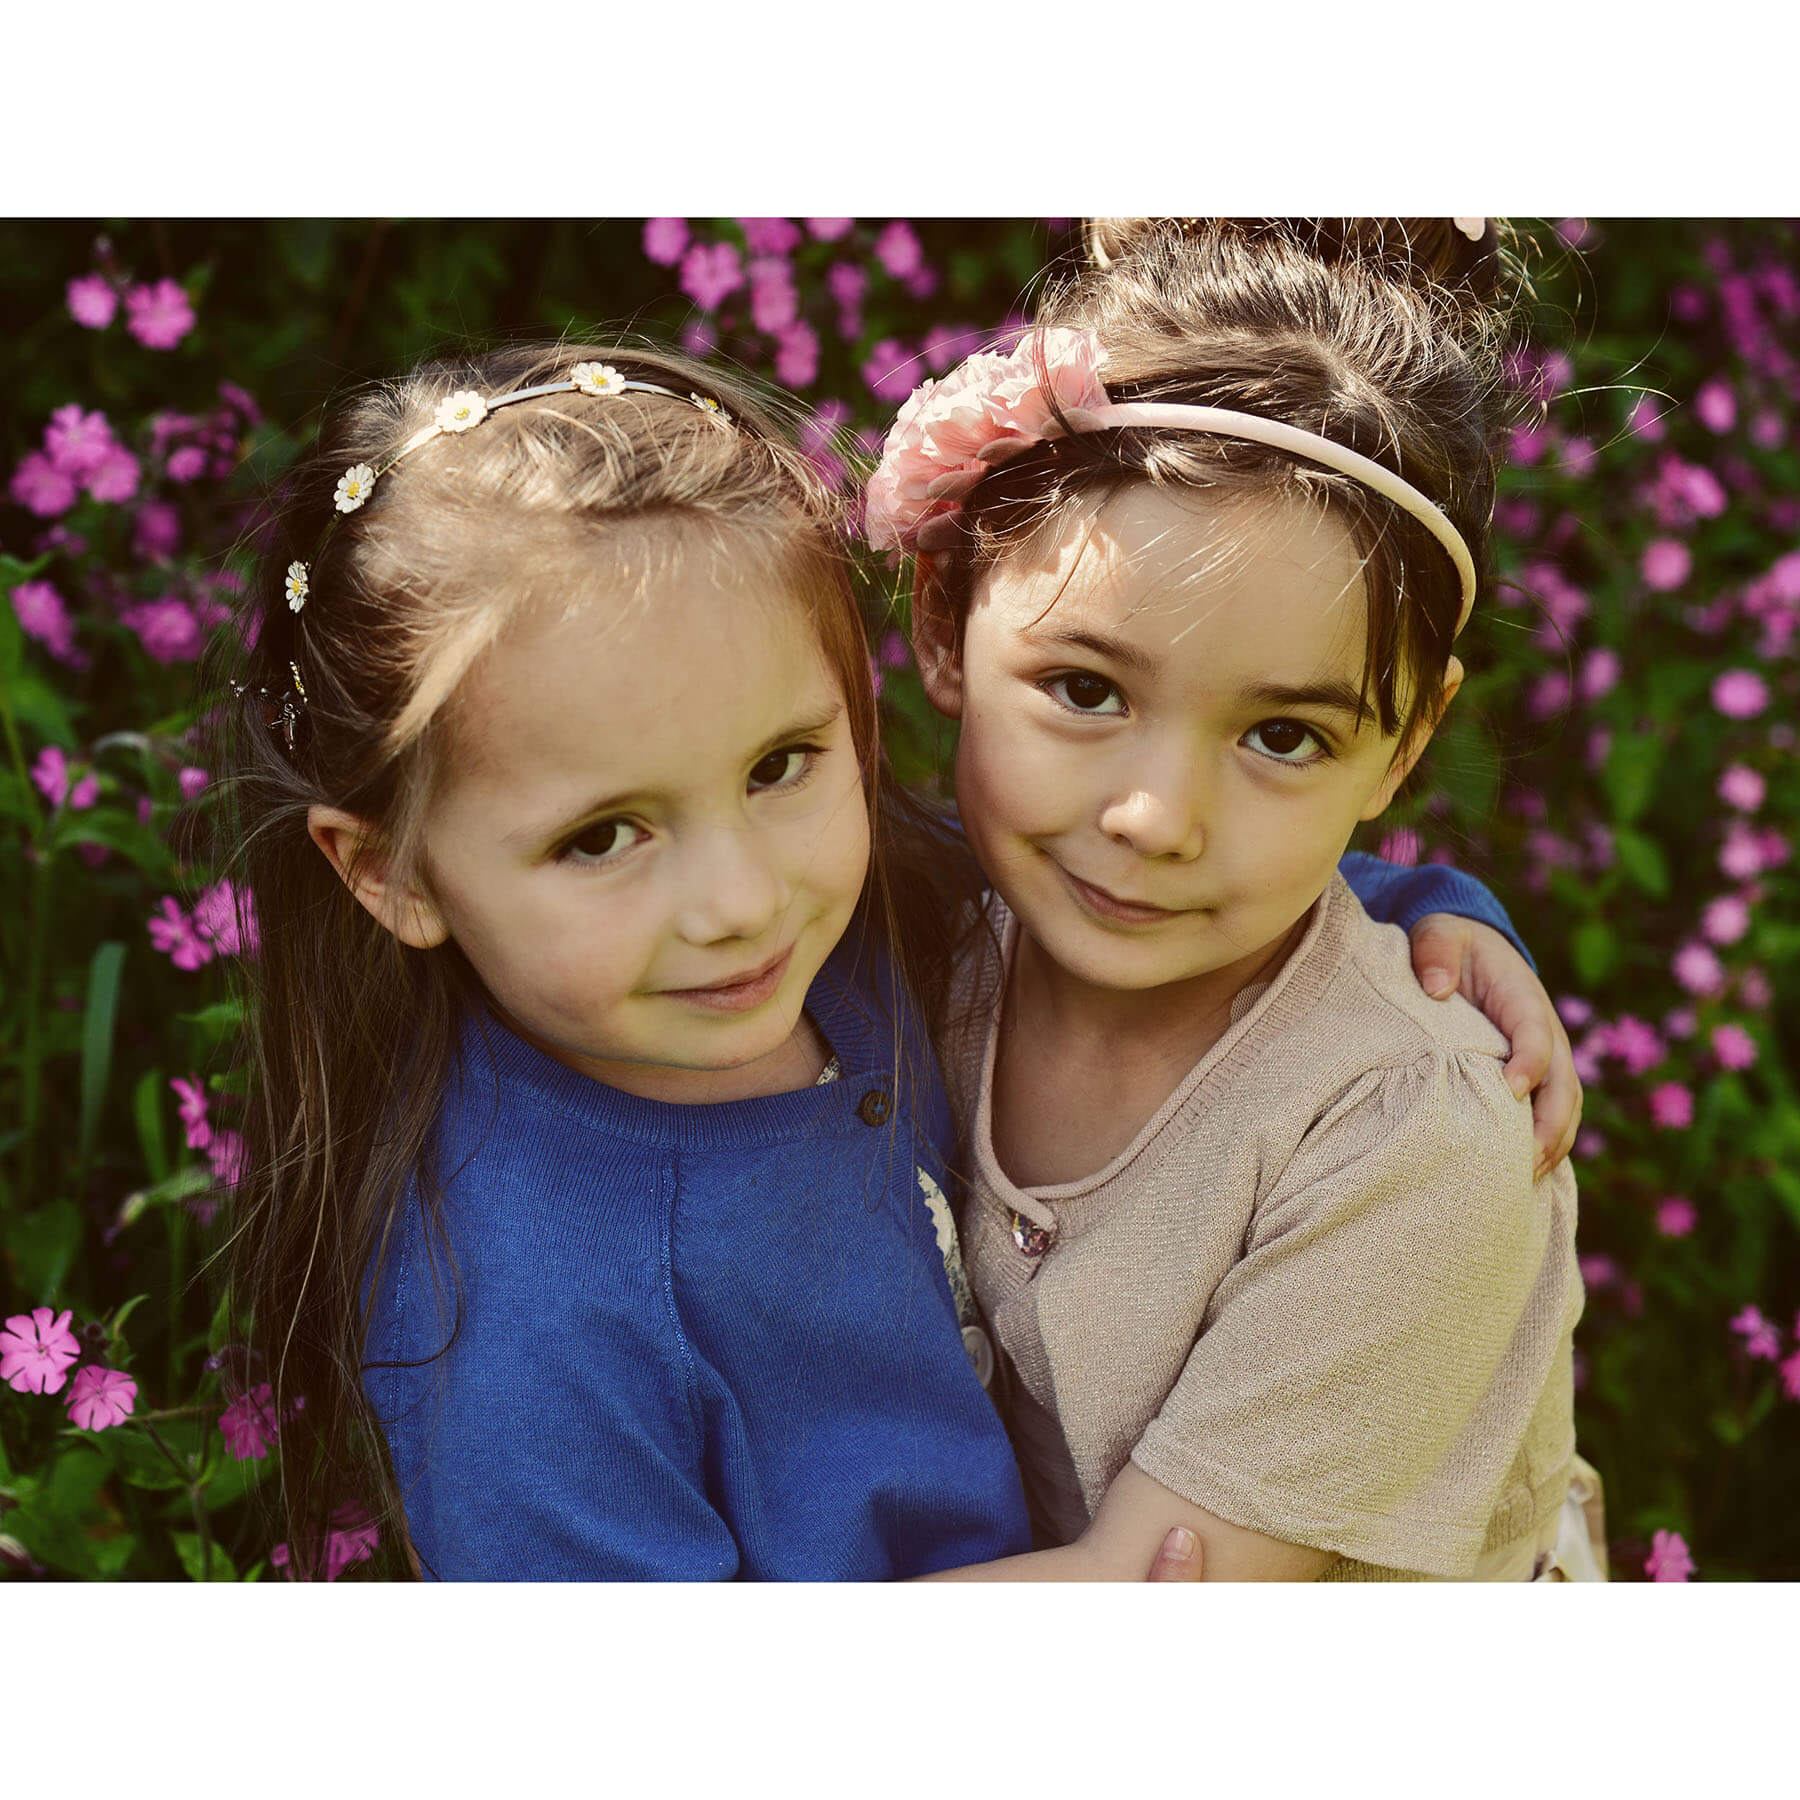 Two young girls hugging with pink flowers in the background